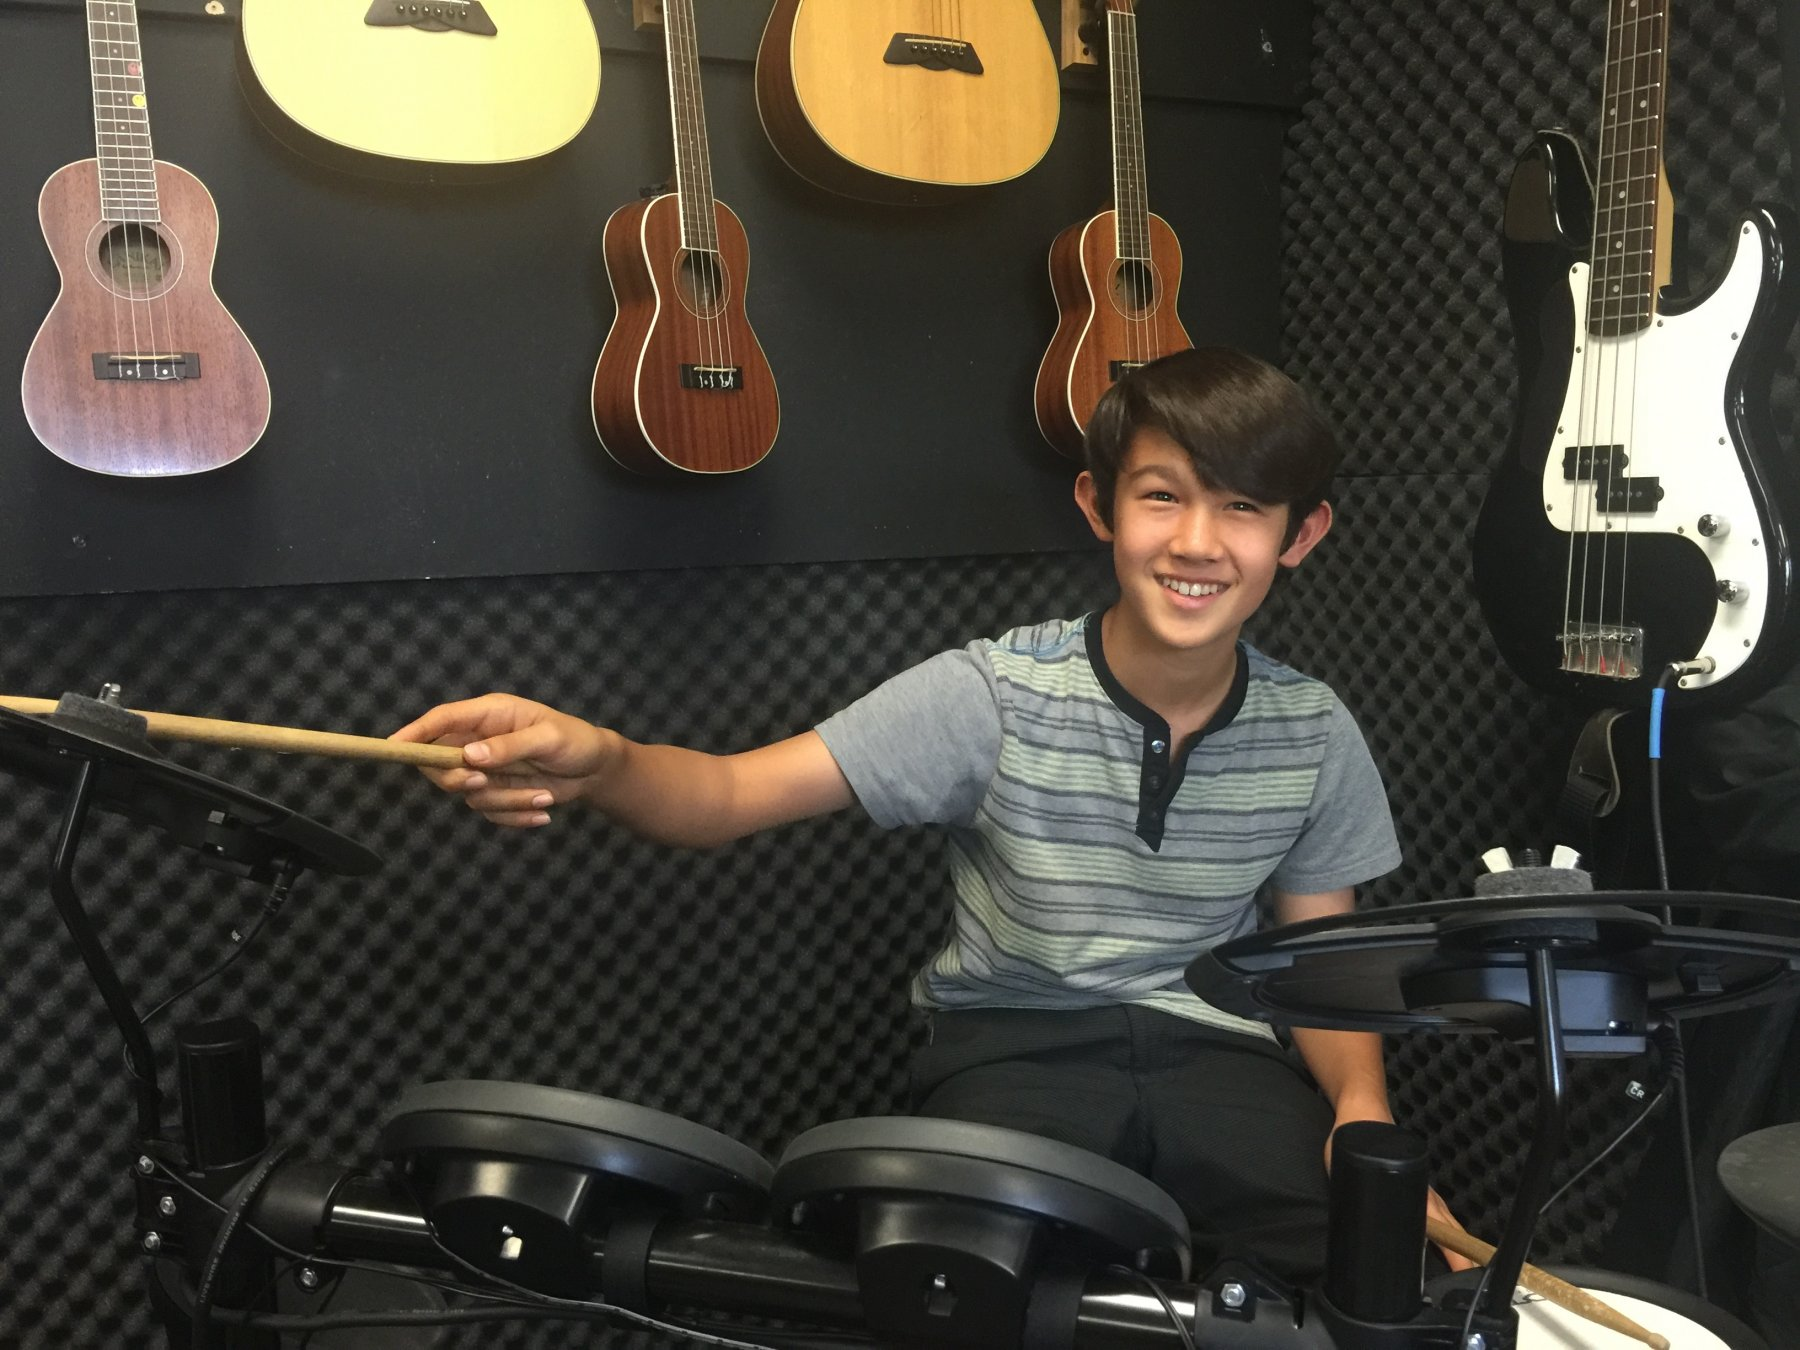 MS Music studio boy playing drums